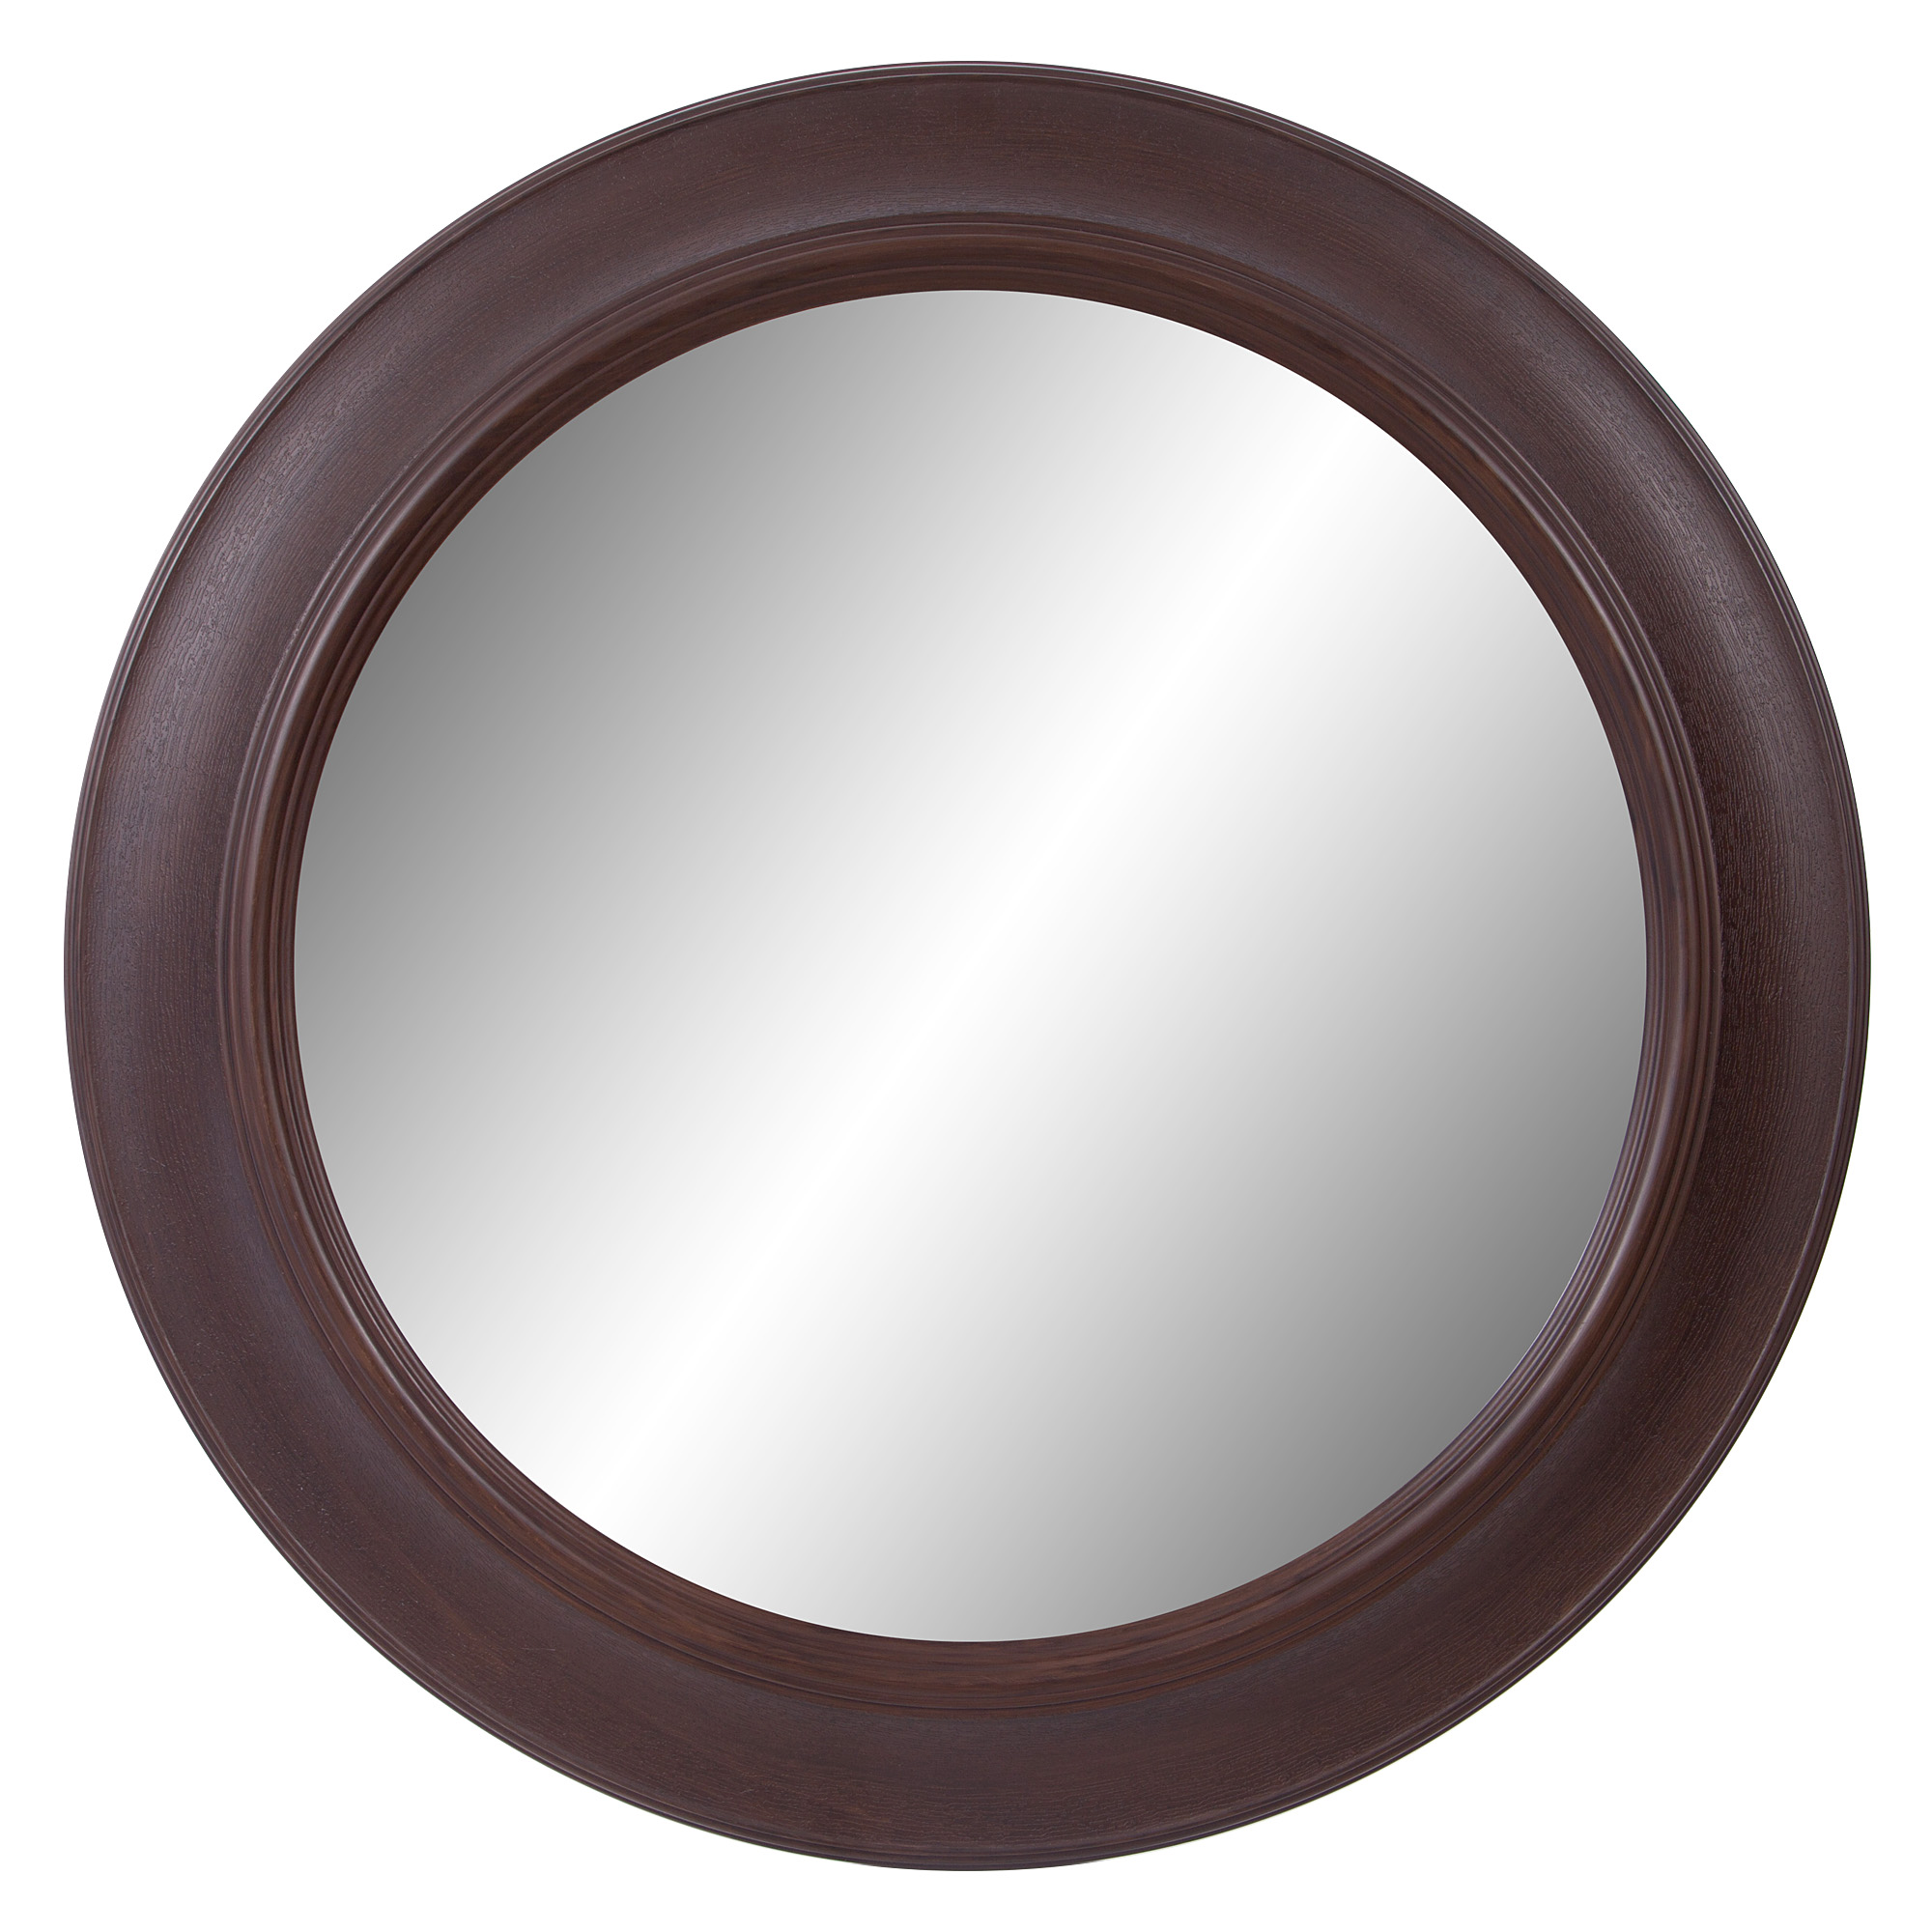 Patton Wall Decor 30 Inch Bronze Woodgrain Round Mirror